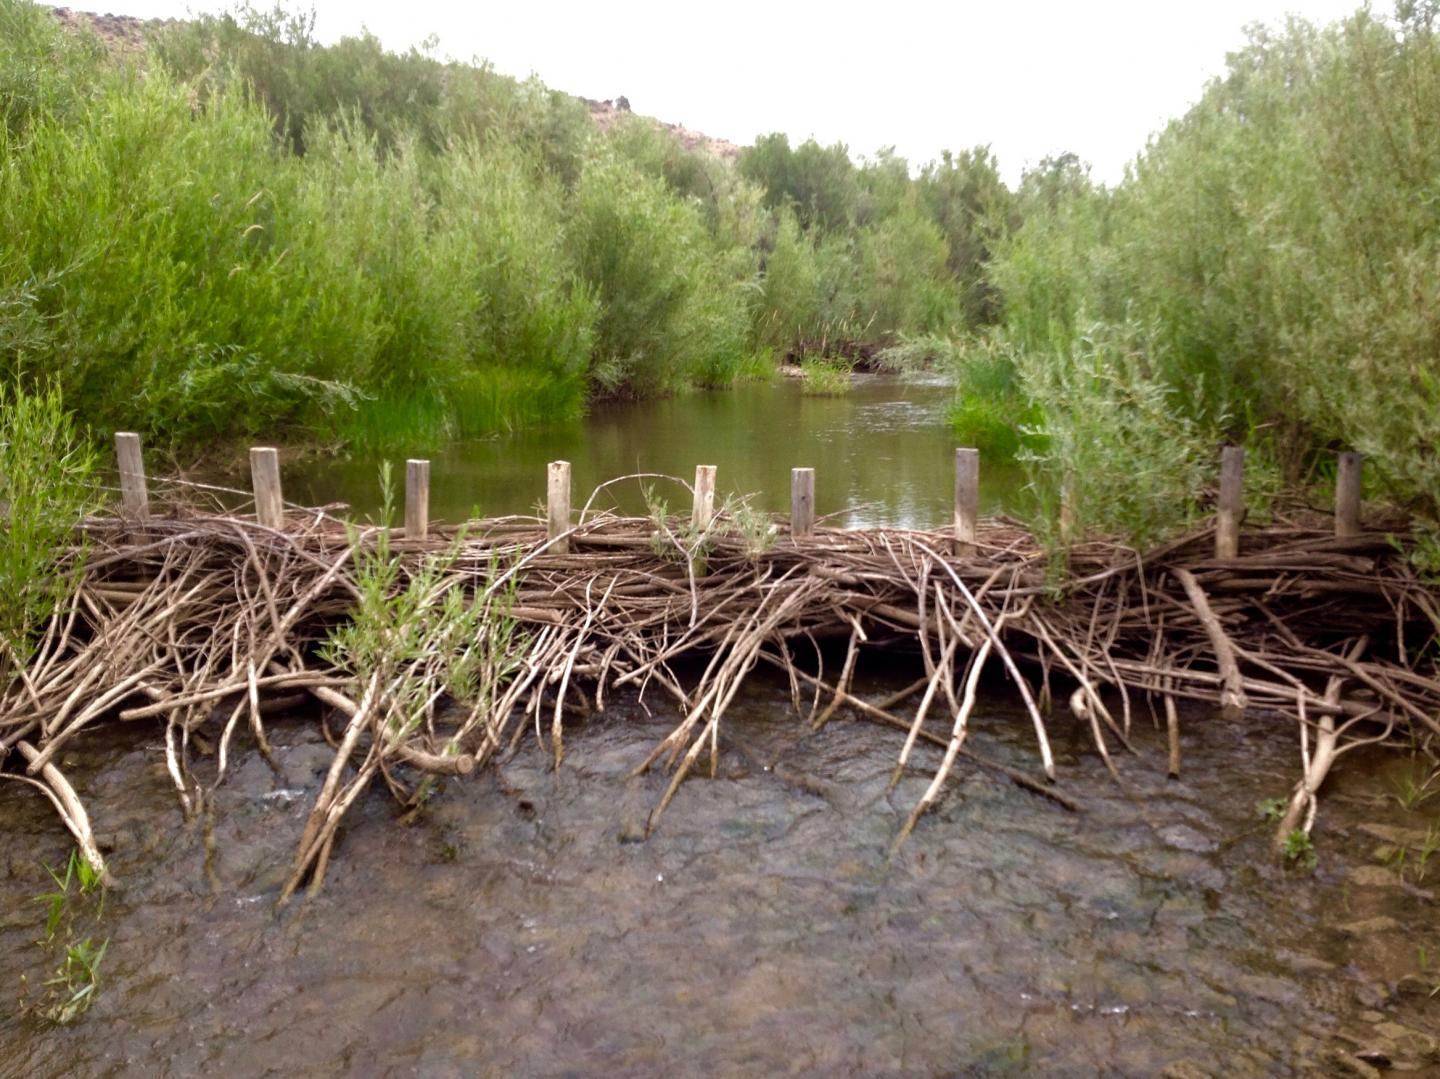 beaver dams strengthened by humans help fish rebound scientific Wood Dam beaver dams strengthened by humans help fish rebound